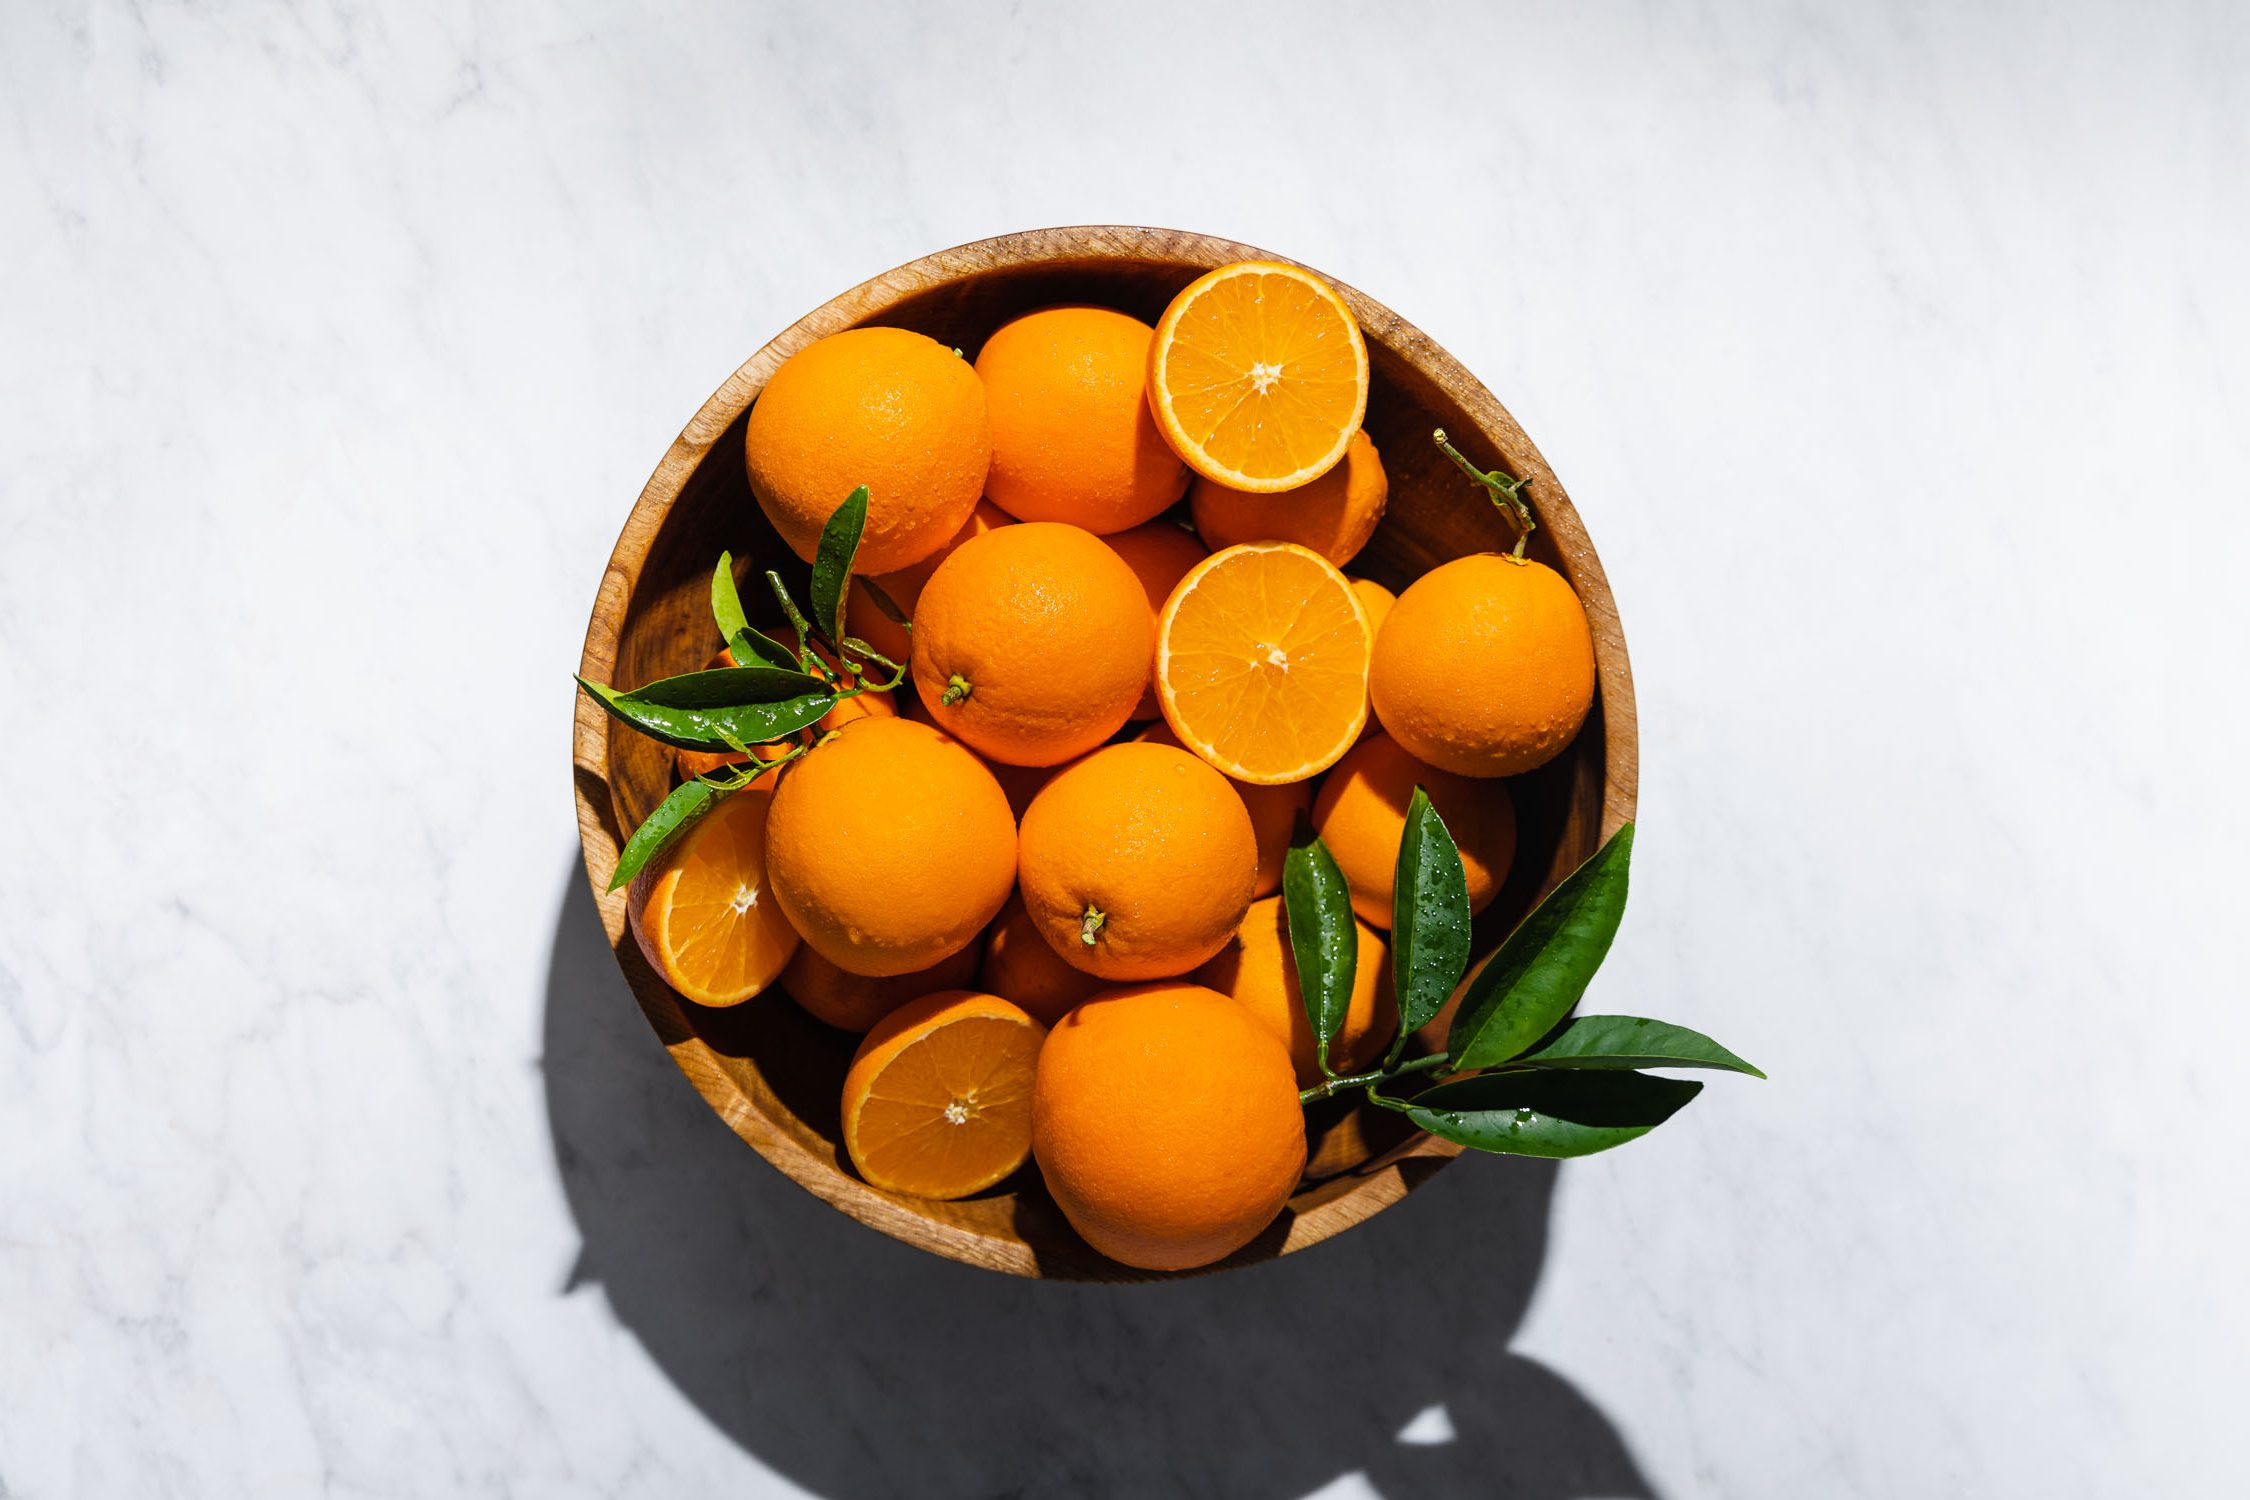 Overhead shot of a large wooden bowl filled with oranges.